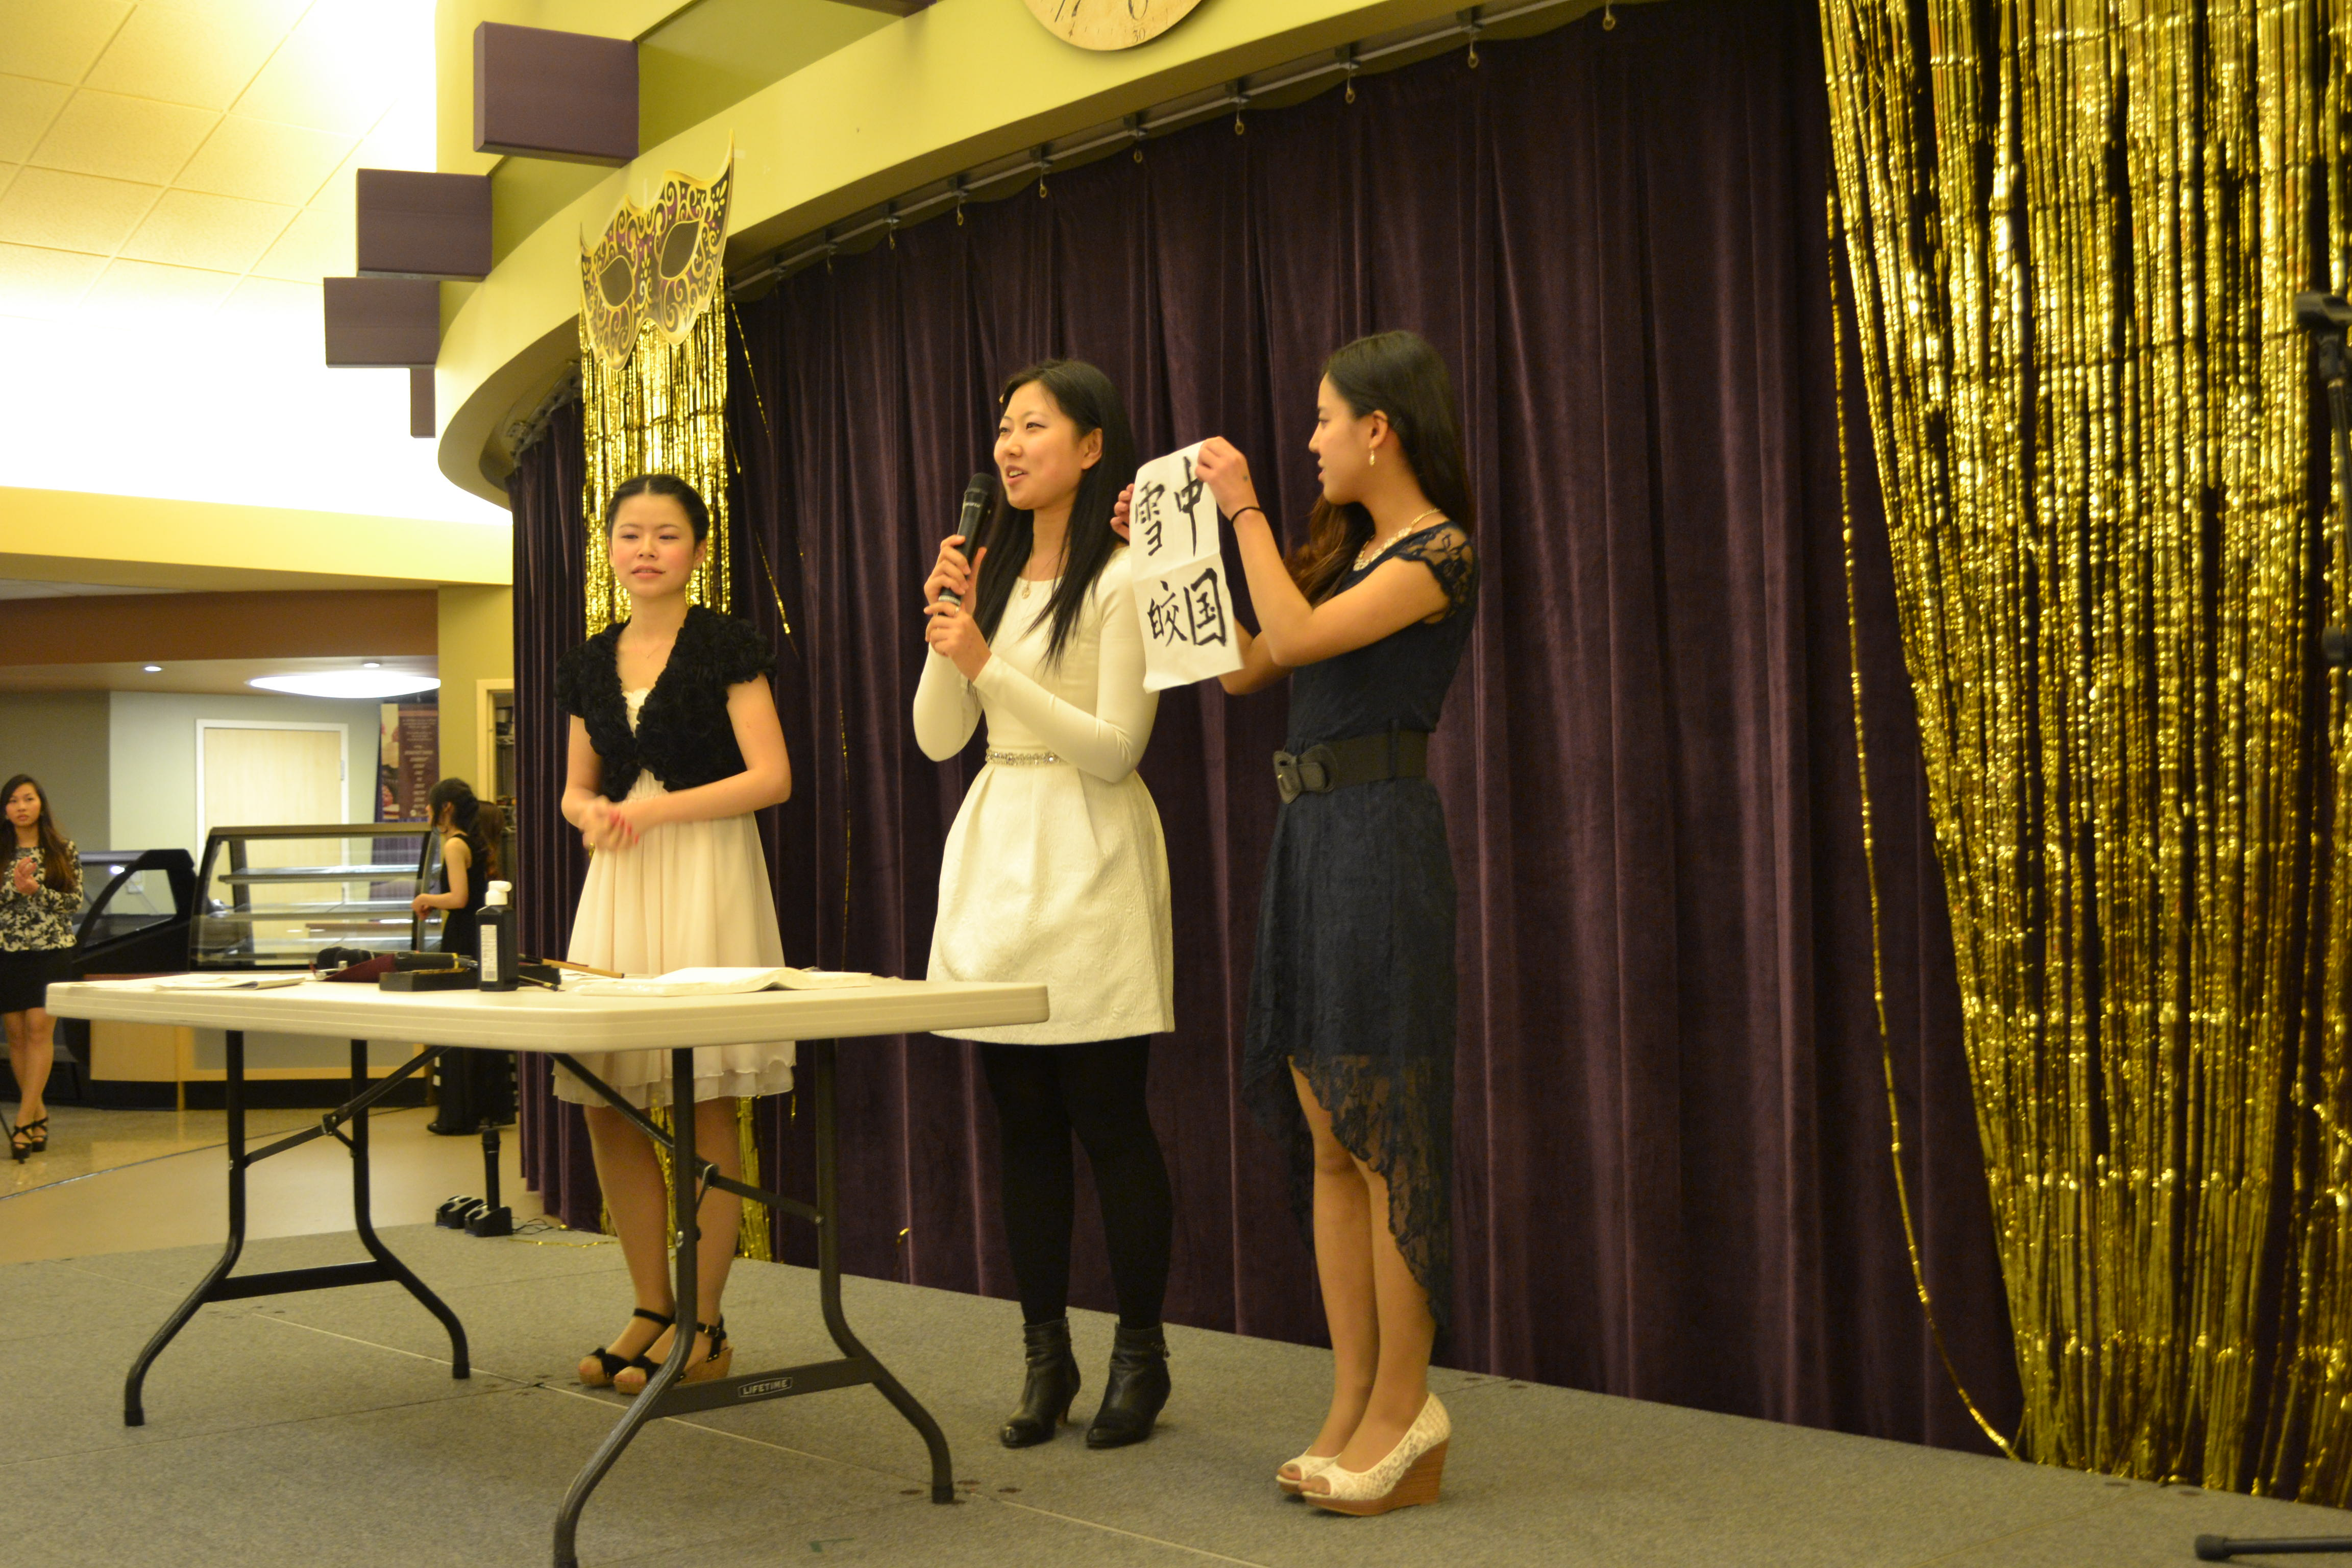 Mount Union international students providing entertainment during the annual International Dinner